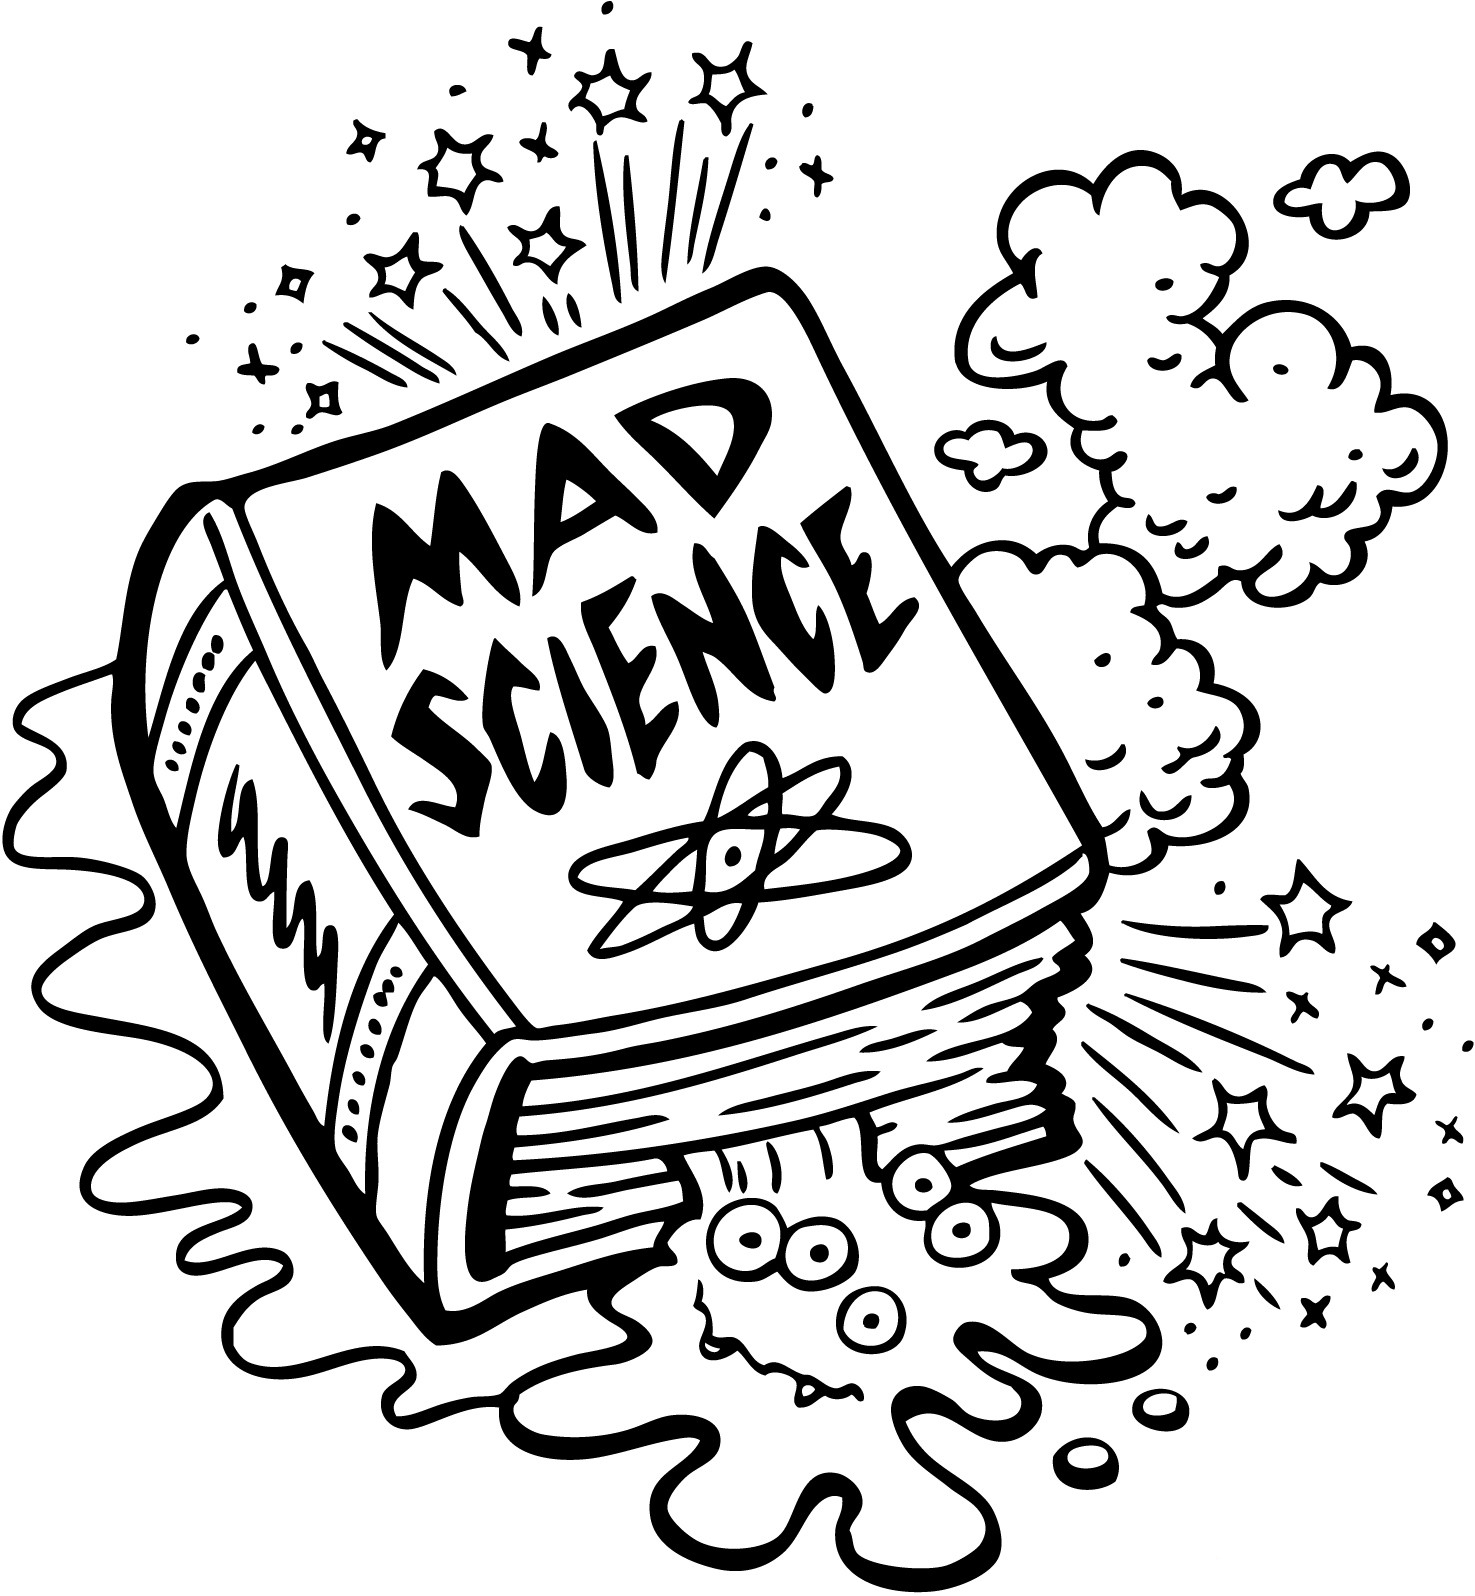 science coloring page science coloring pages best coloring pages for kids coloring science page